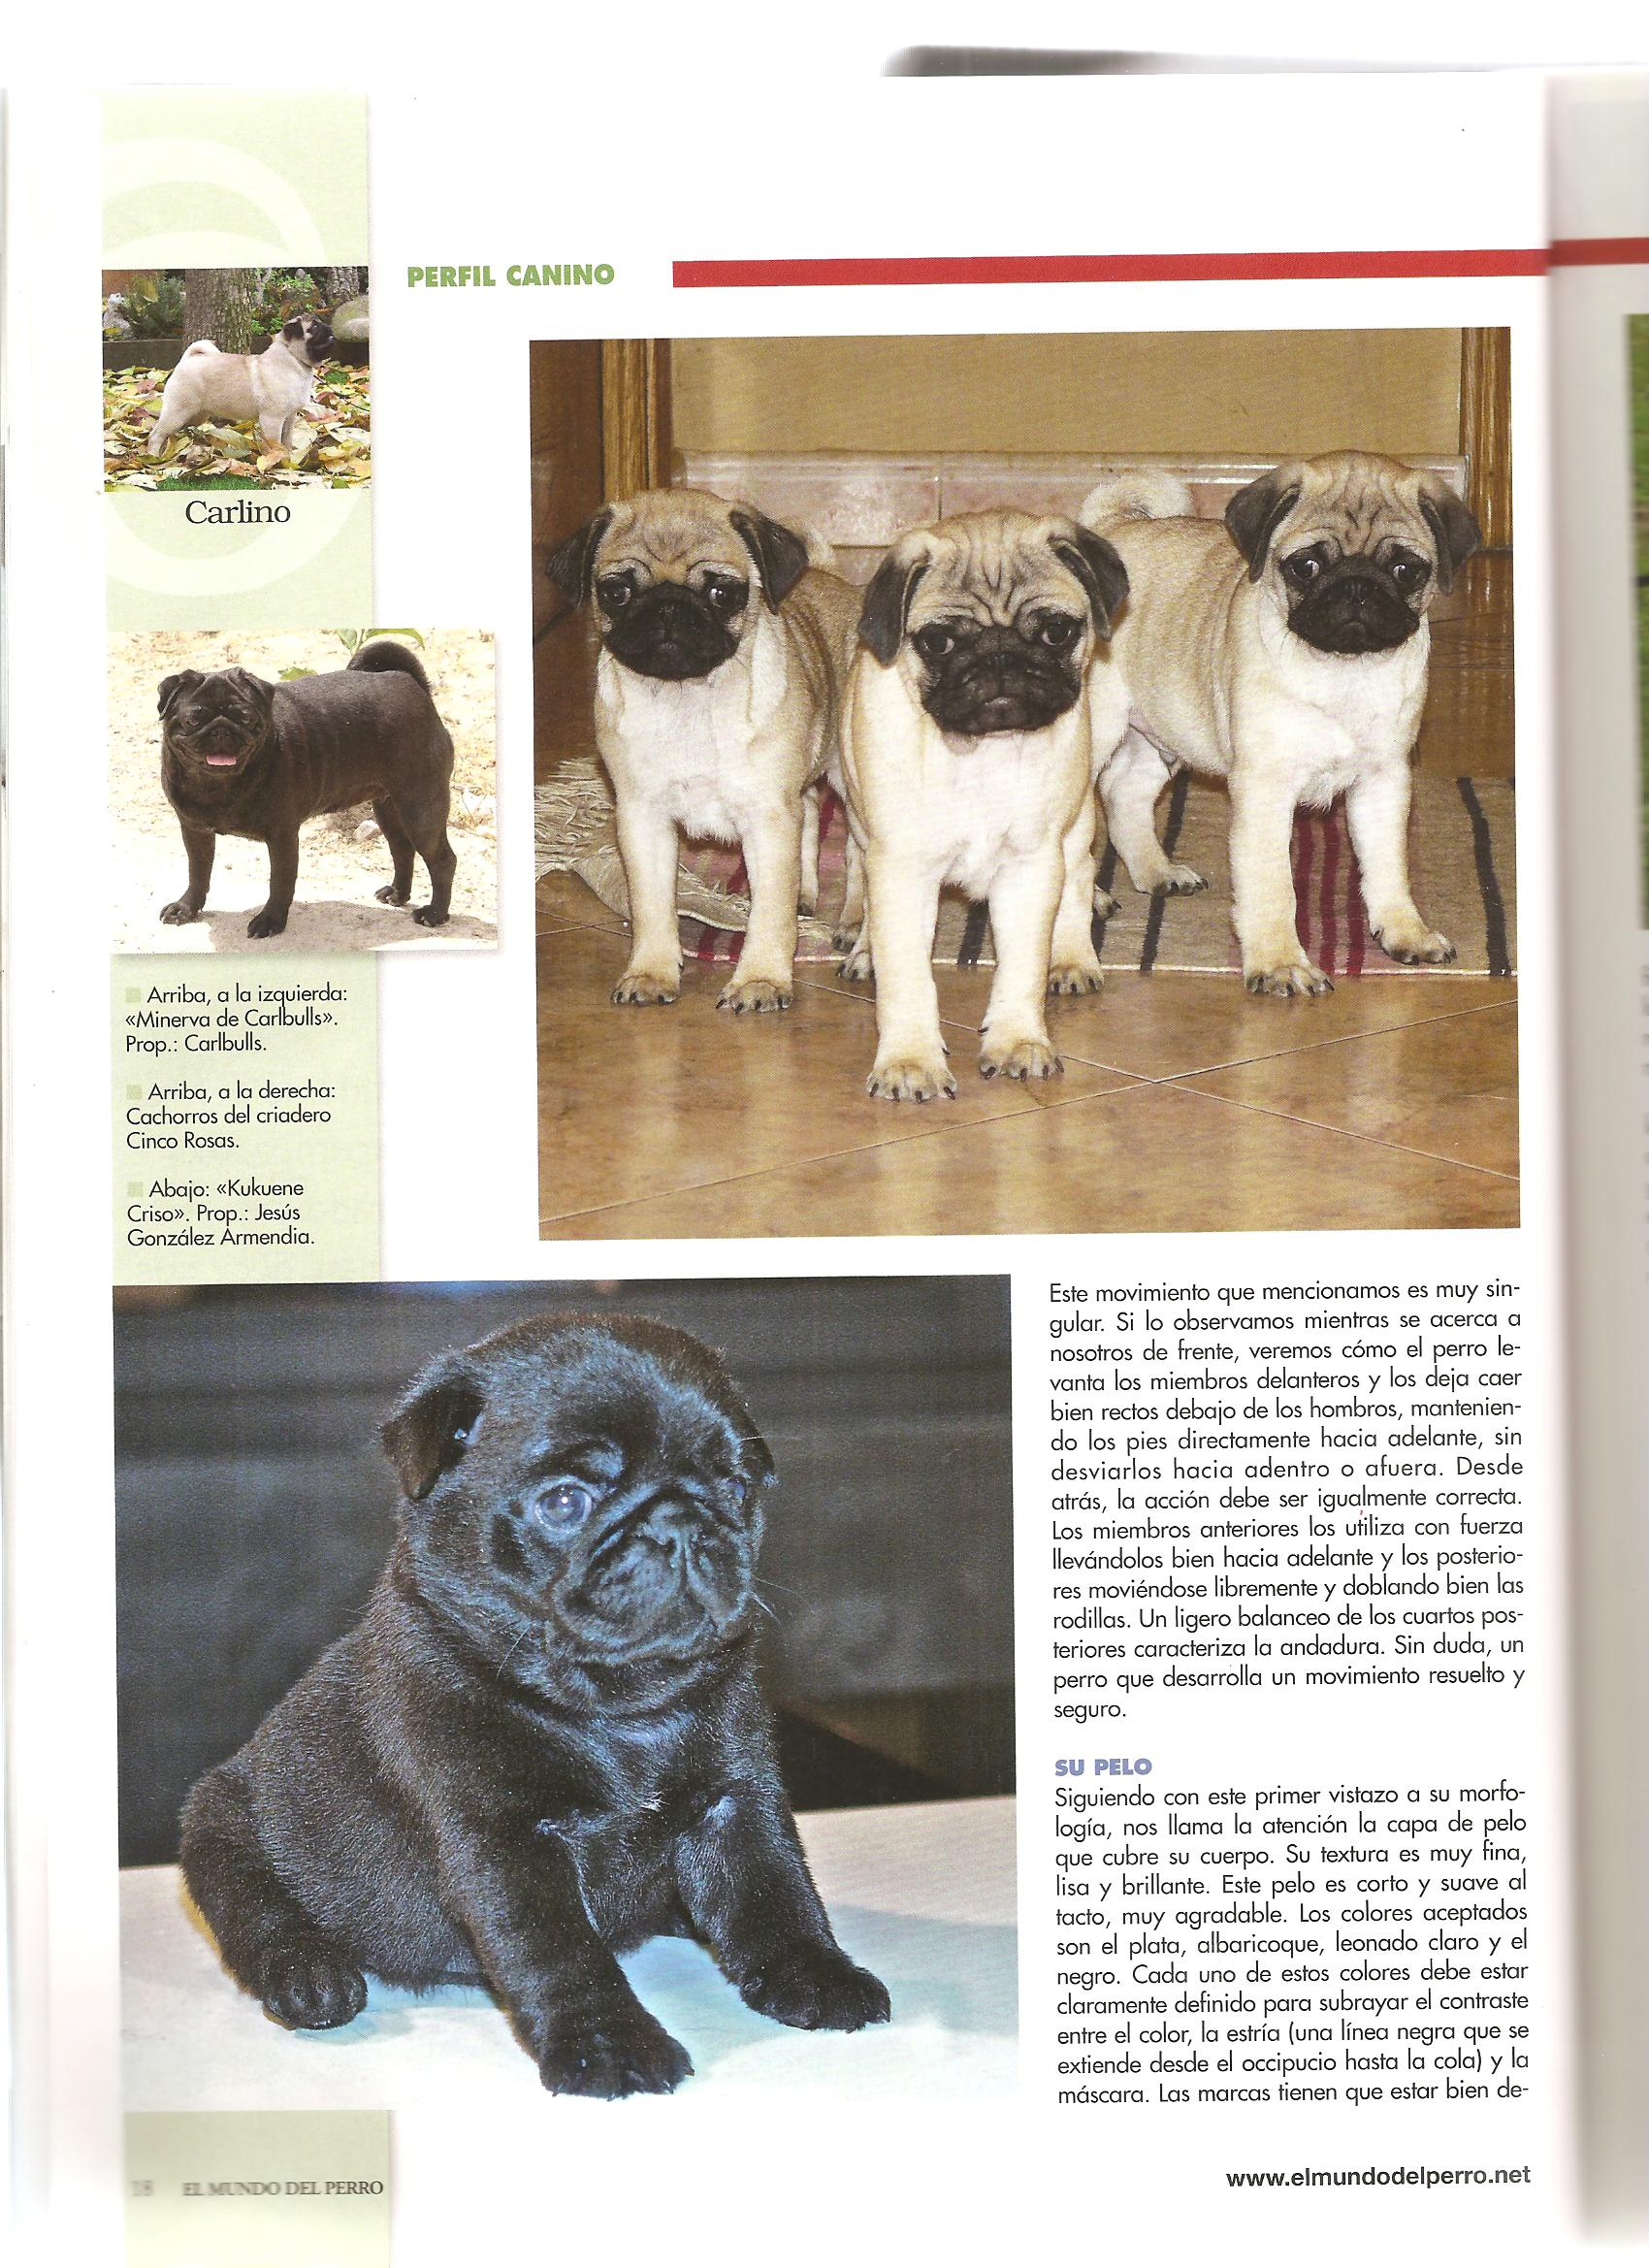 carlino negro black pug alicante